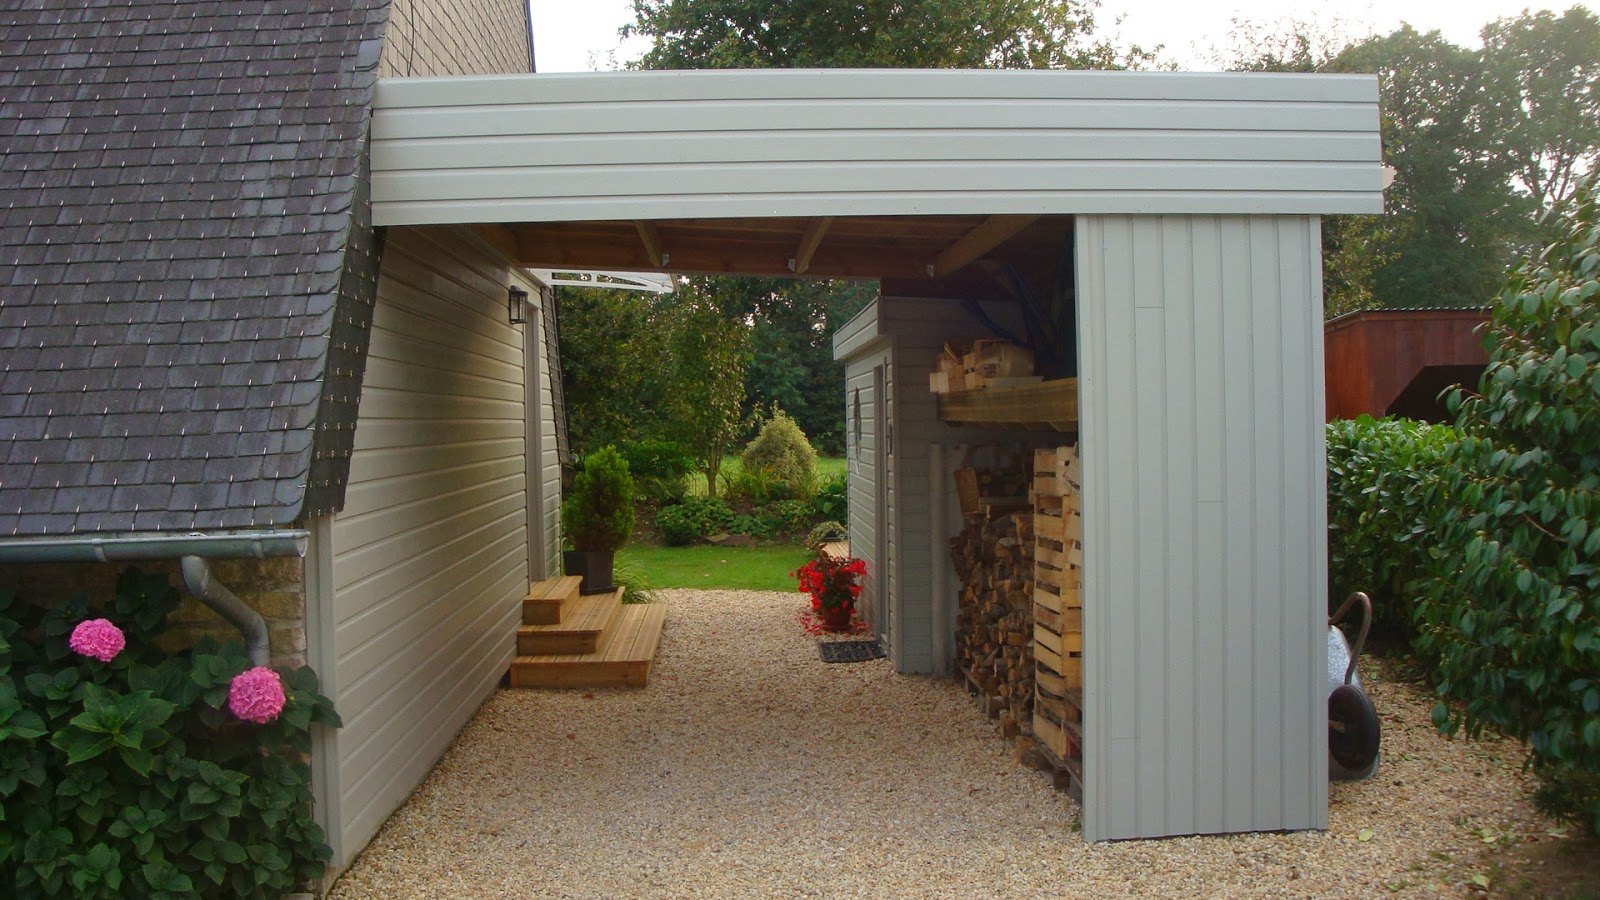 Michel le coz agencement d coration ext rieur car port - Decoration exterieur en bois ...